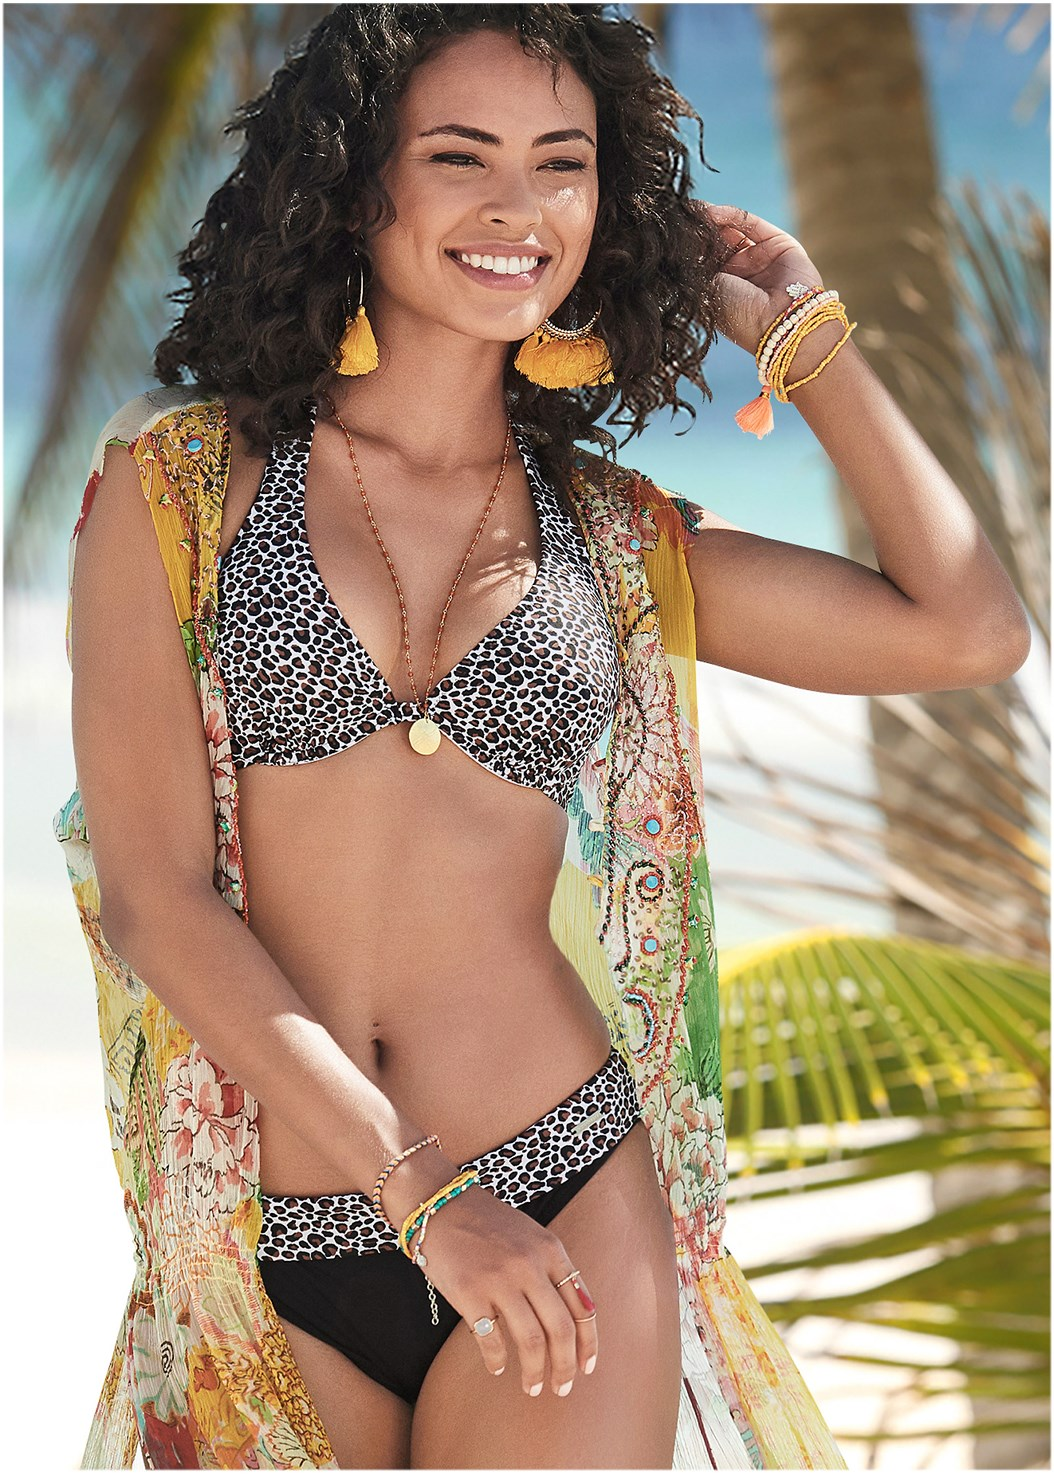 Banded Moderate Bottom,Underwire Halter Top,Underwire Bra Top,Beaded Triangle Top,Button Cover-Up Shirt,Circular Straw Bag